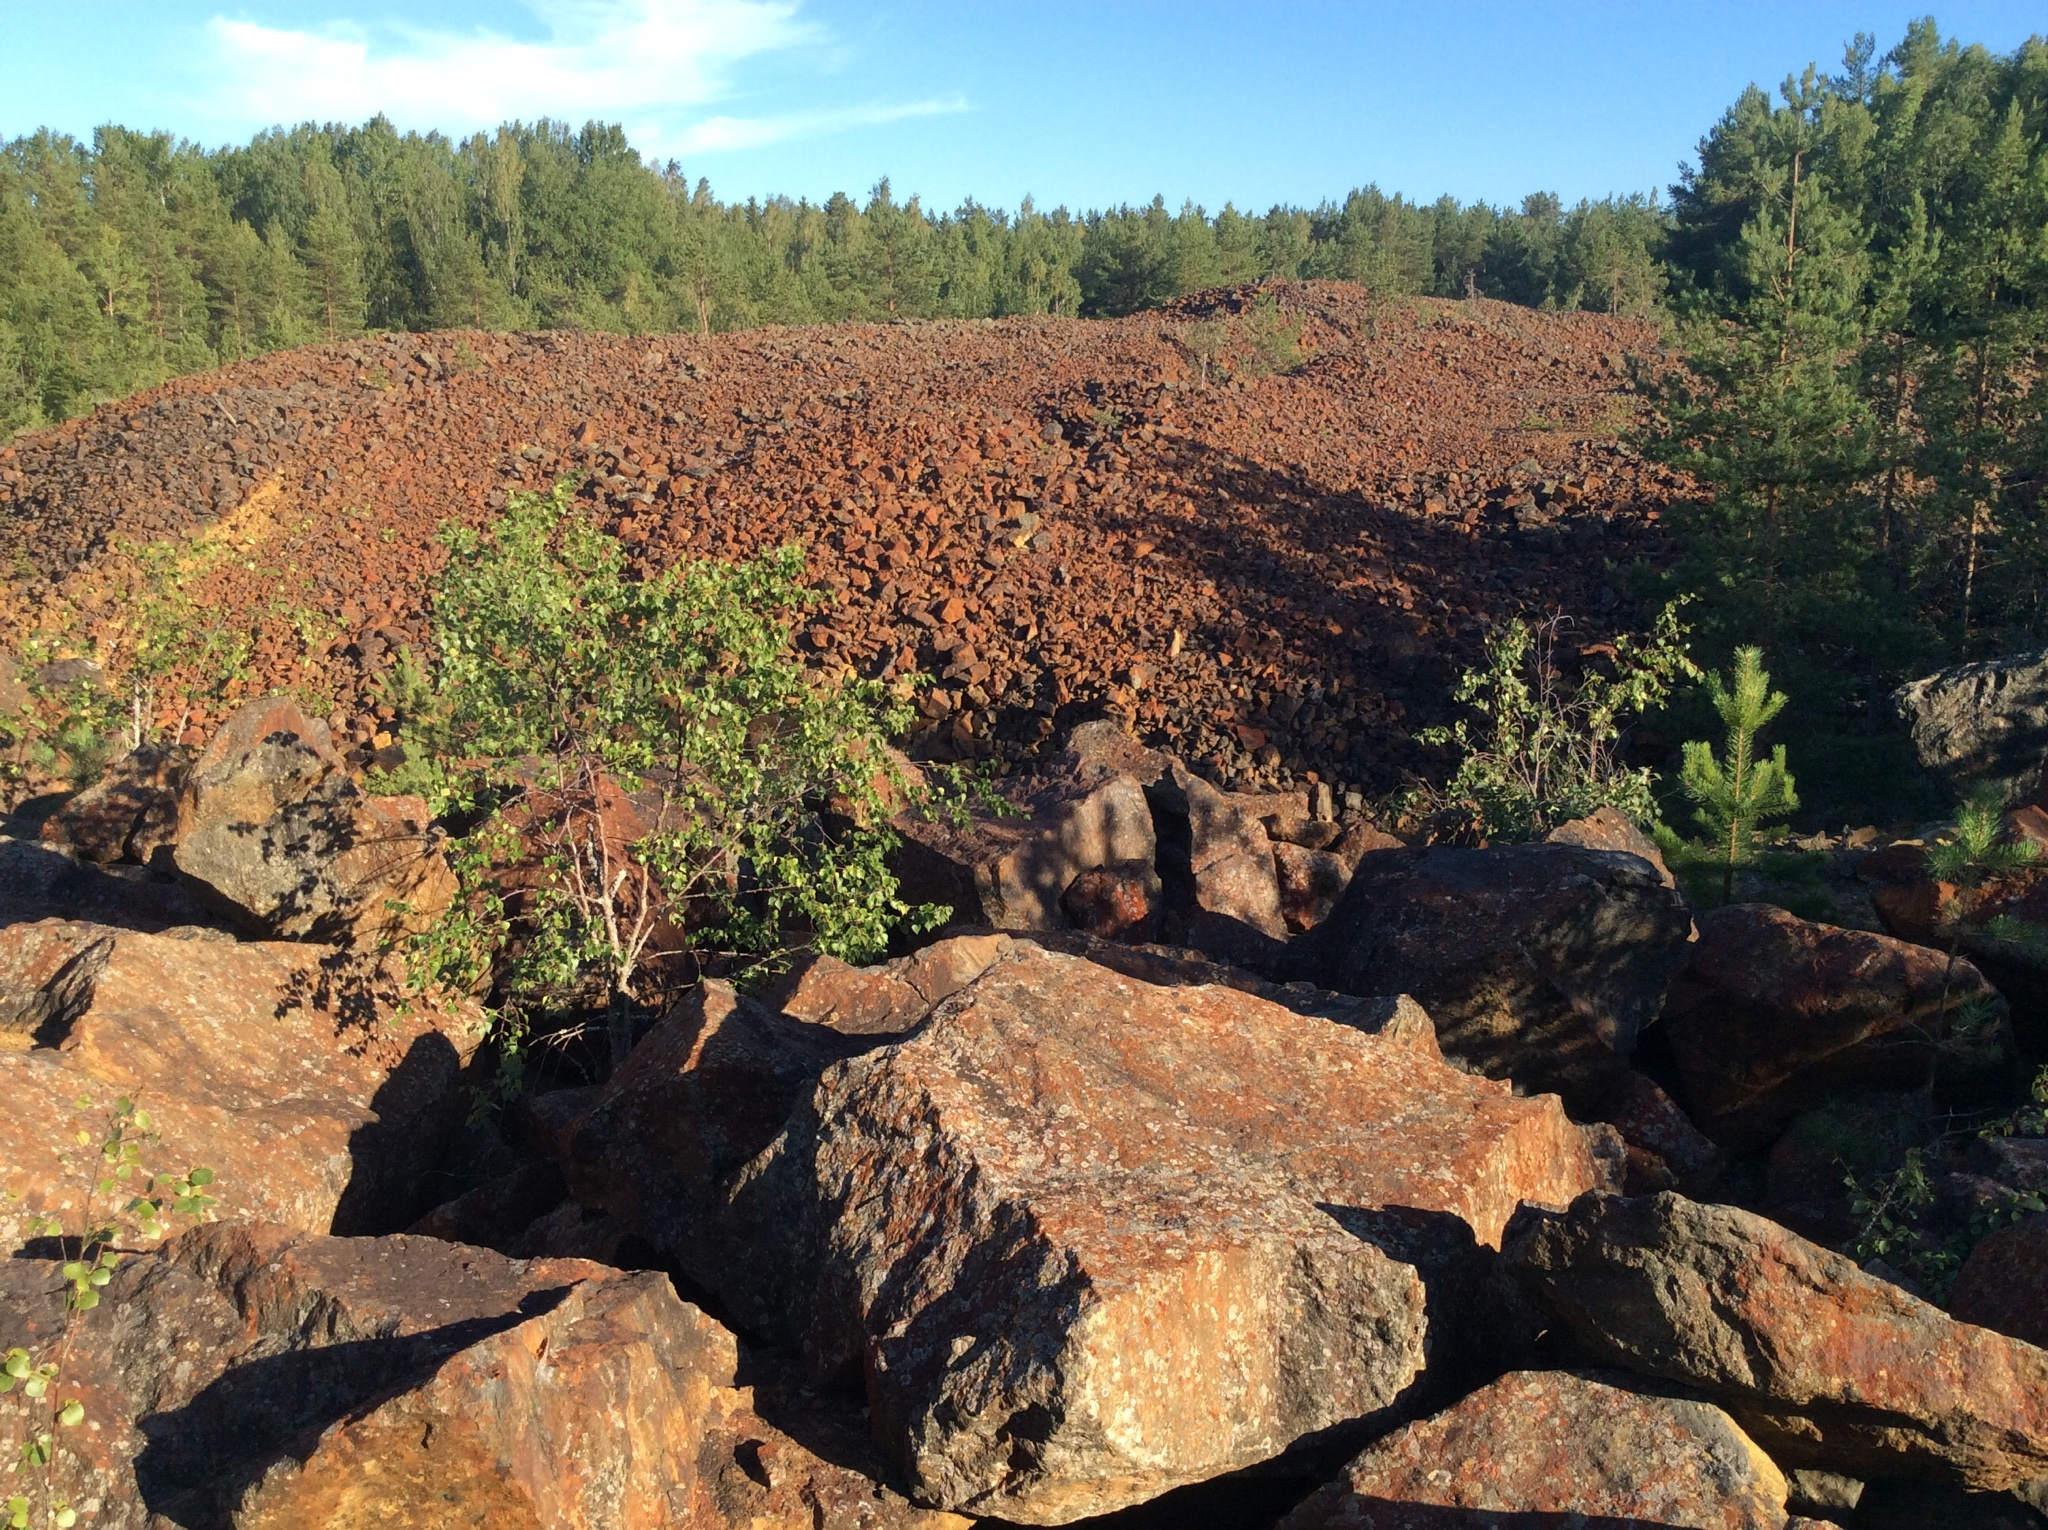 Extensive dumps and mine workings on the property